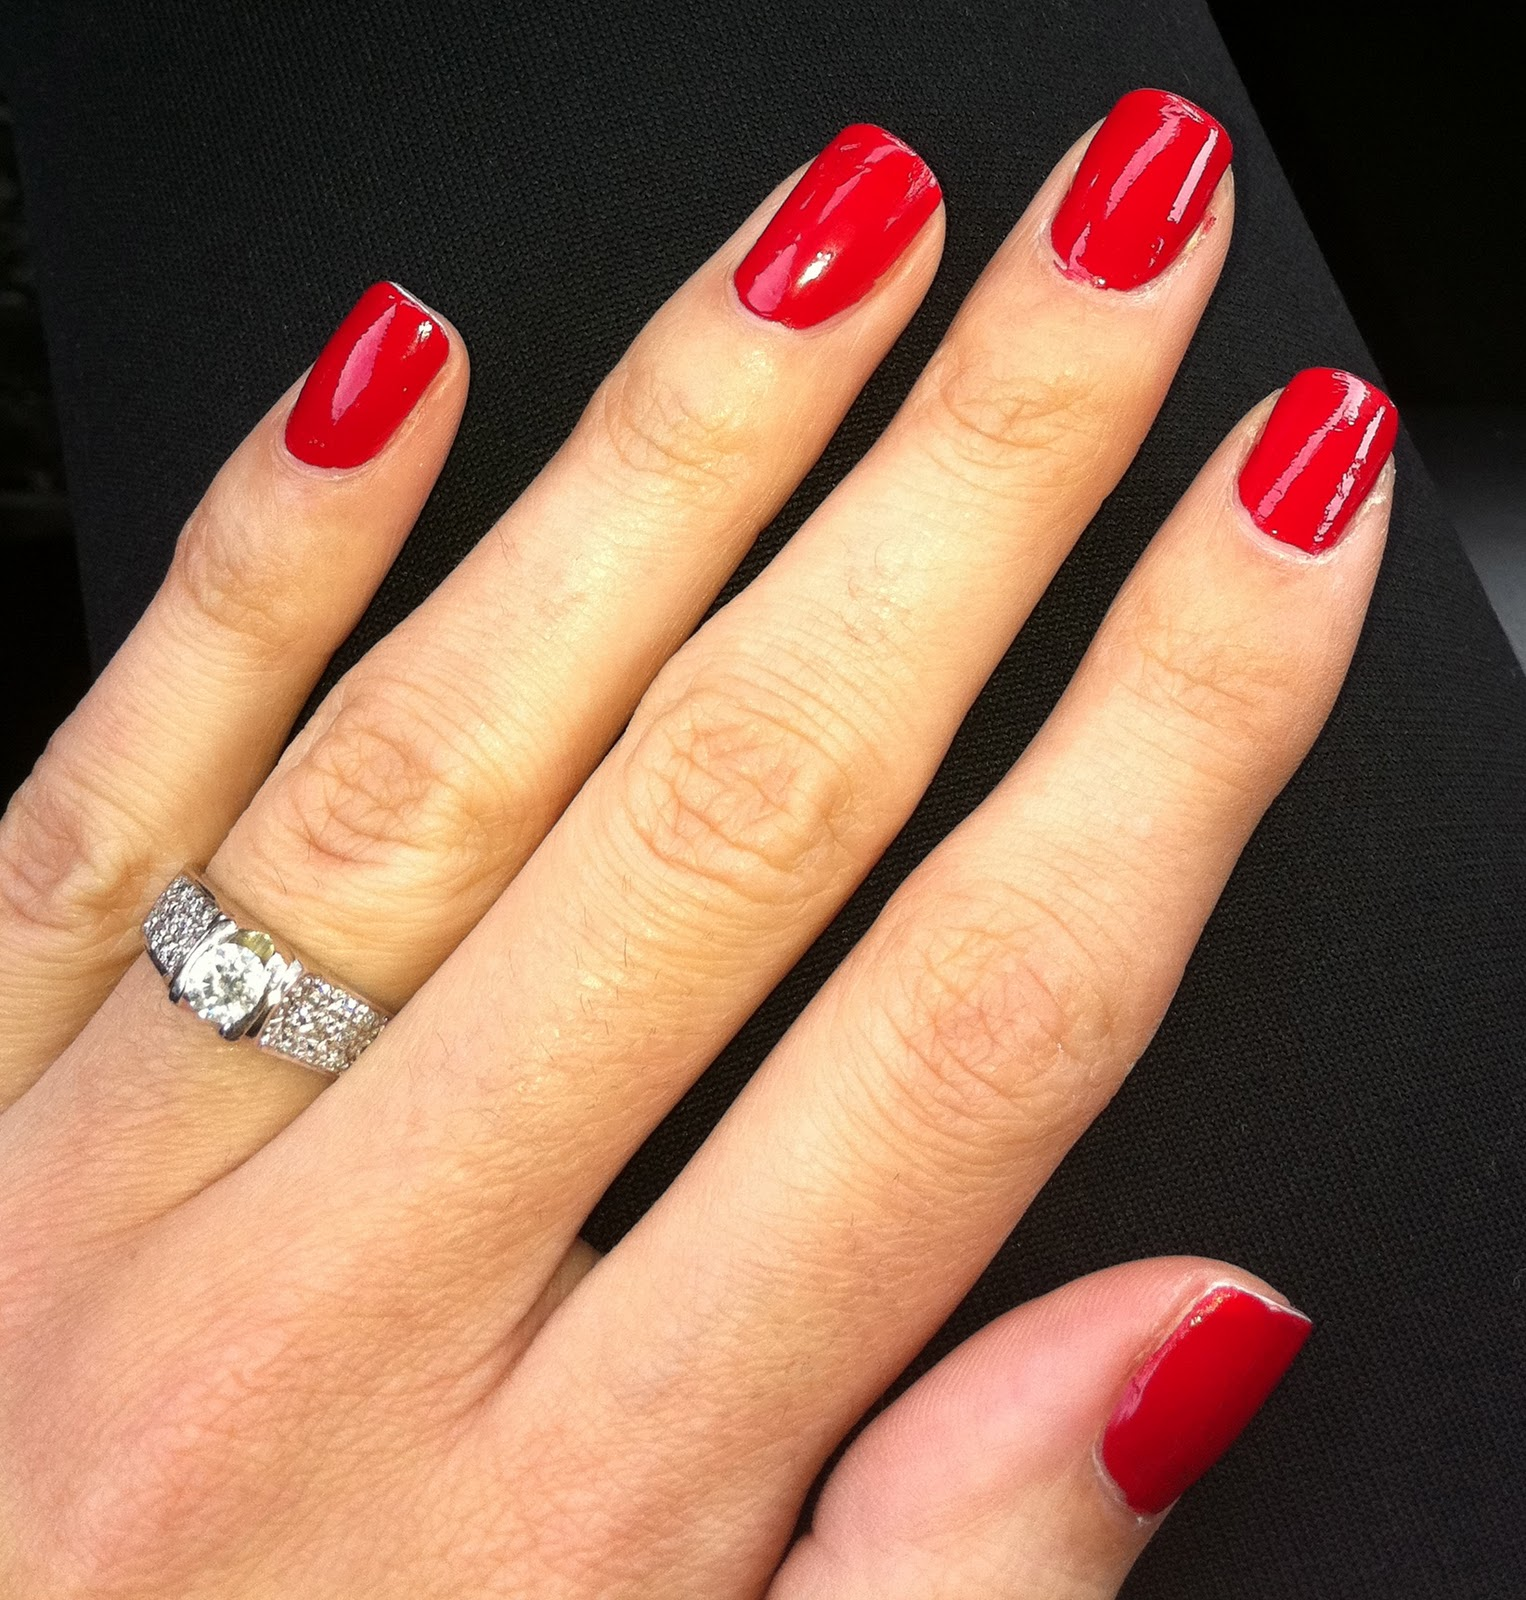 Nails Red: 13 Beautiful Red Painted Fingernail Pictures